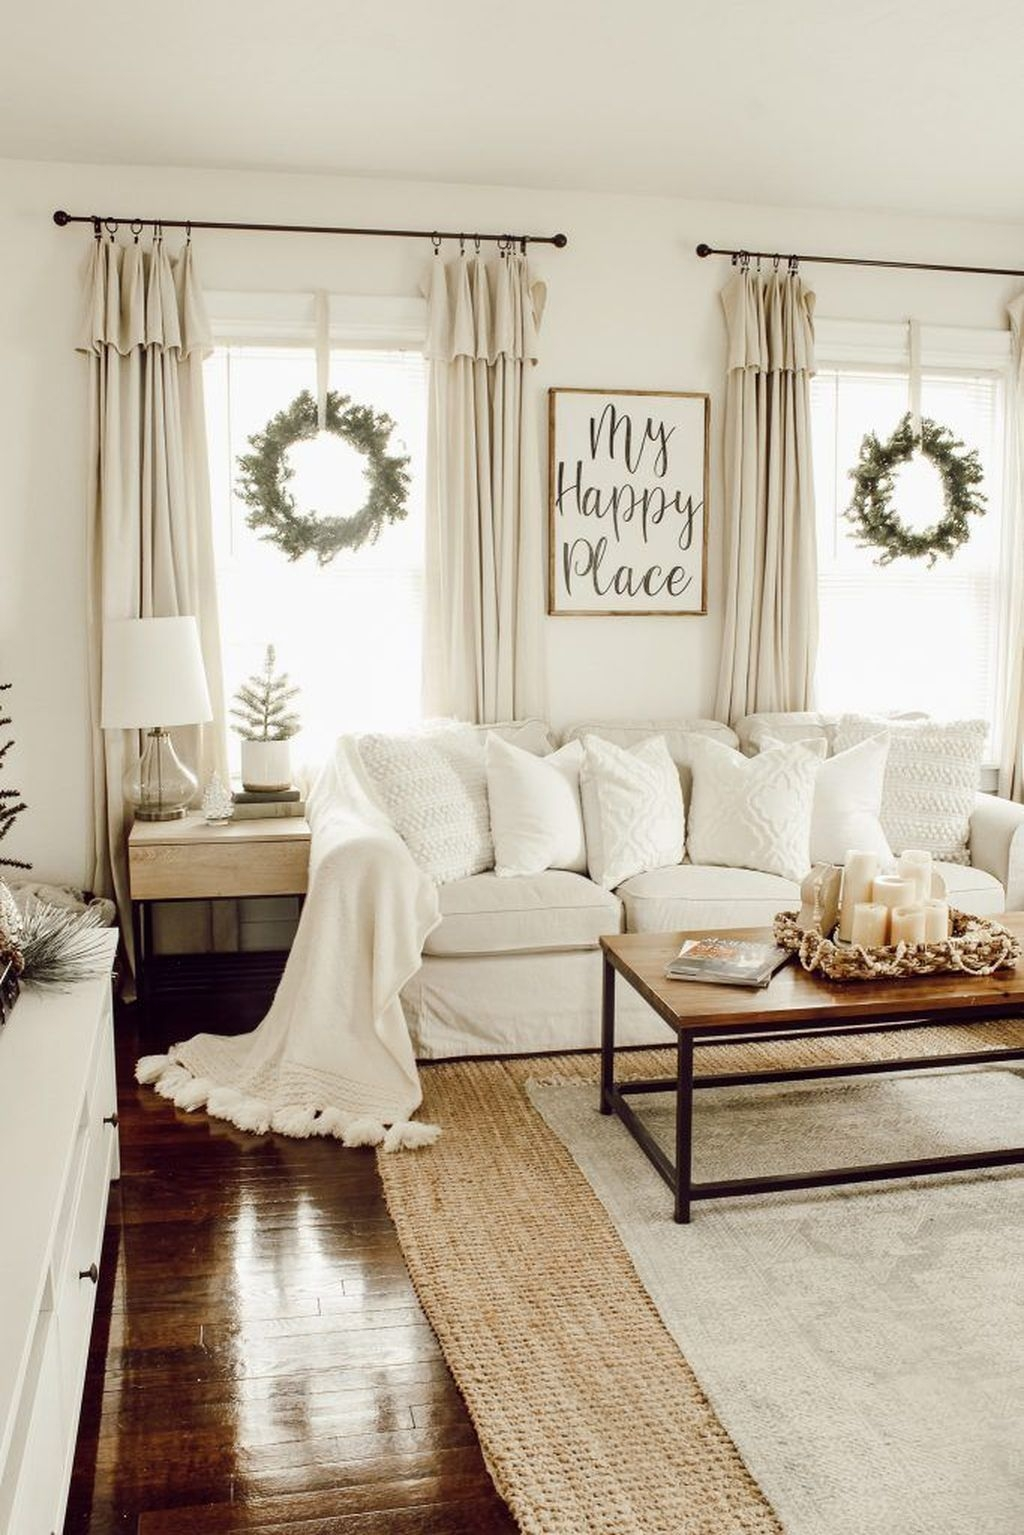 The Best Living Room Decorating Ideas Trends 2019 32